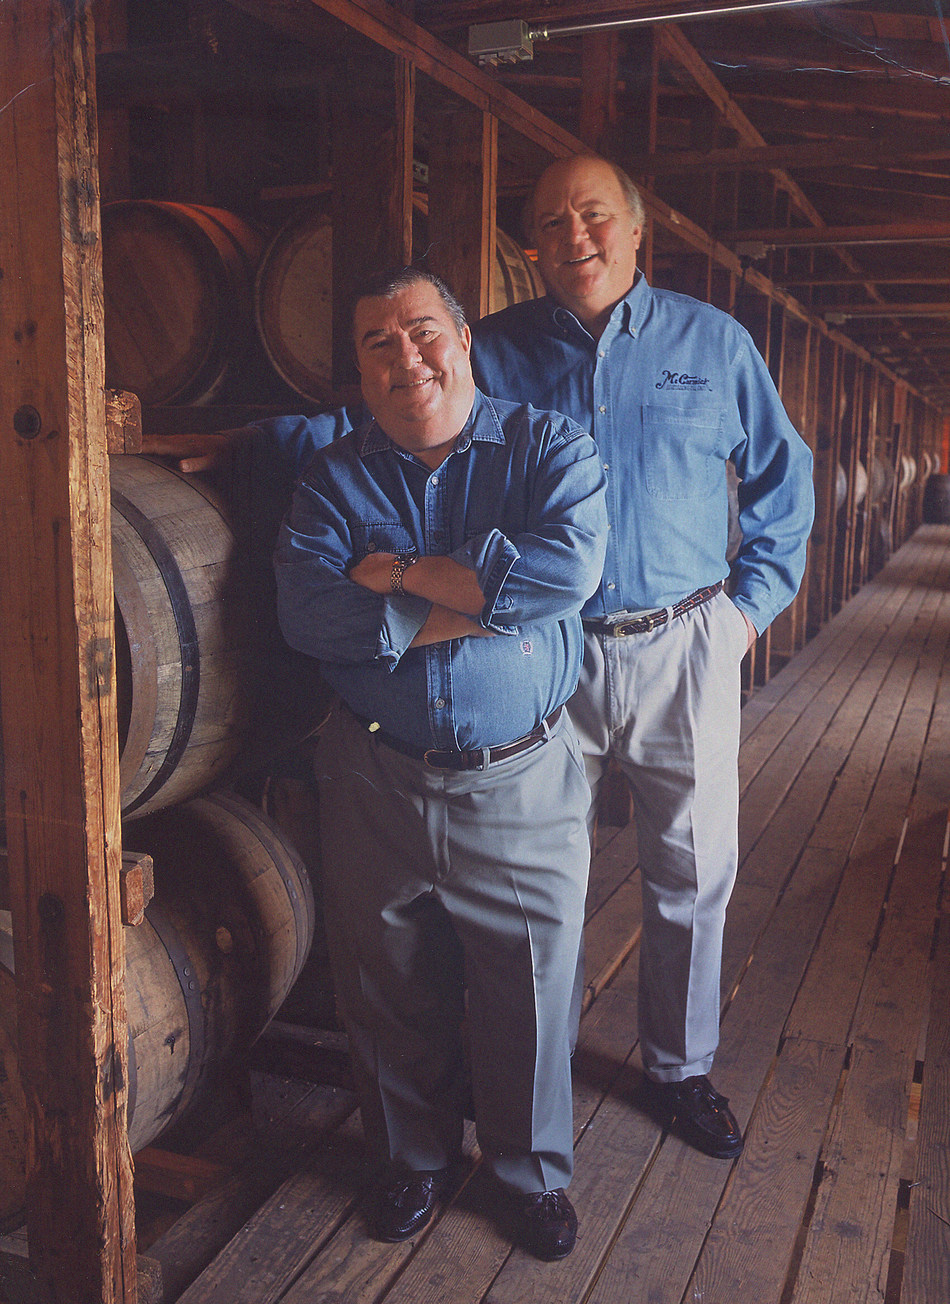 From left, Edward A. Pechar and the late Michael S. Griesser.